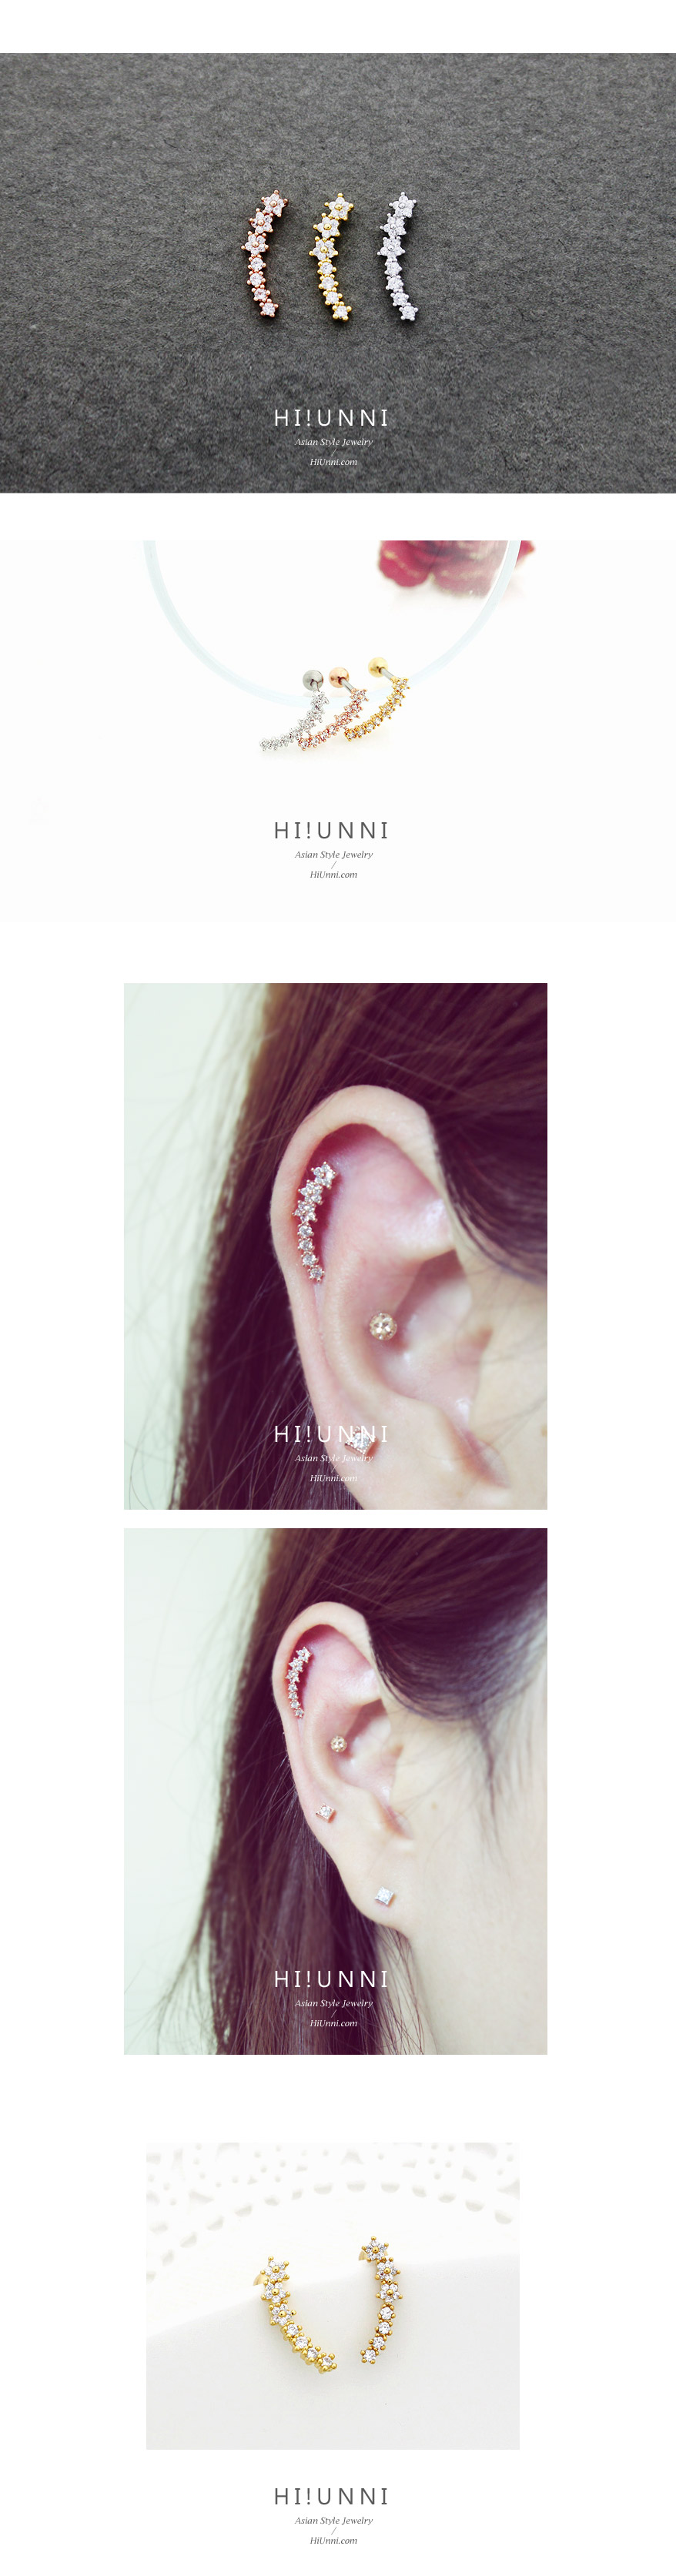 ear_studs_piercing_cartilage_earrings_16g_316l_surgical_stainless_steel_korean_asian_style_jewelry_barbell_rose_gold_helix_star_4